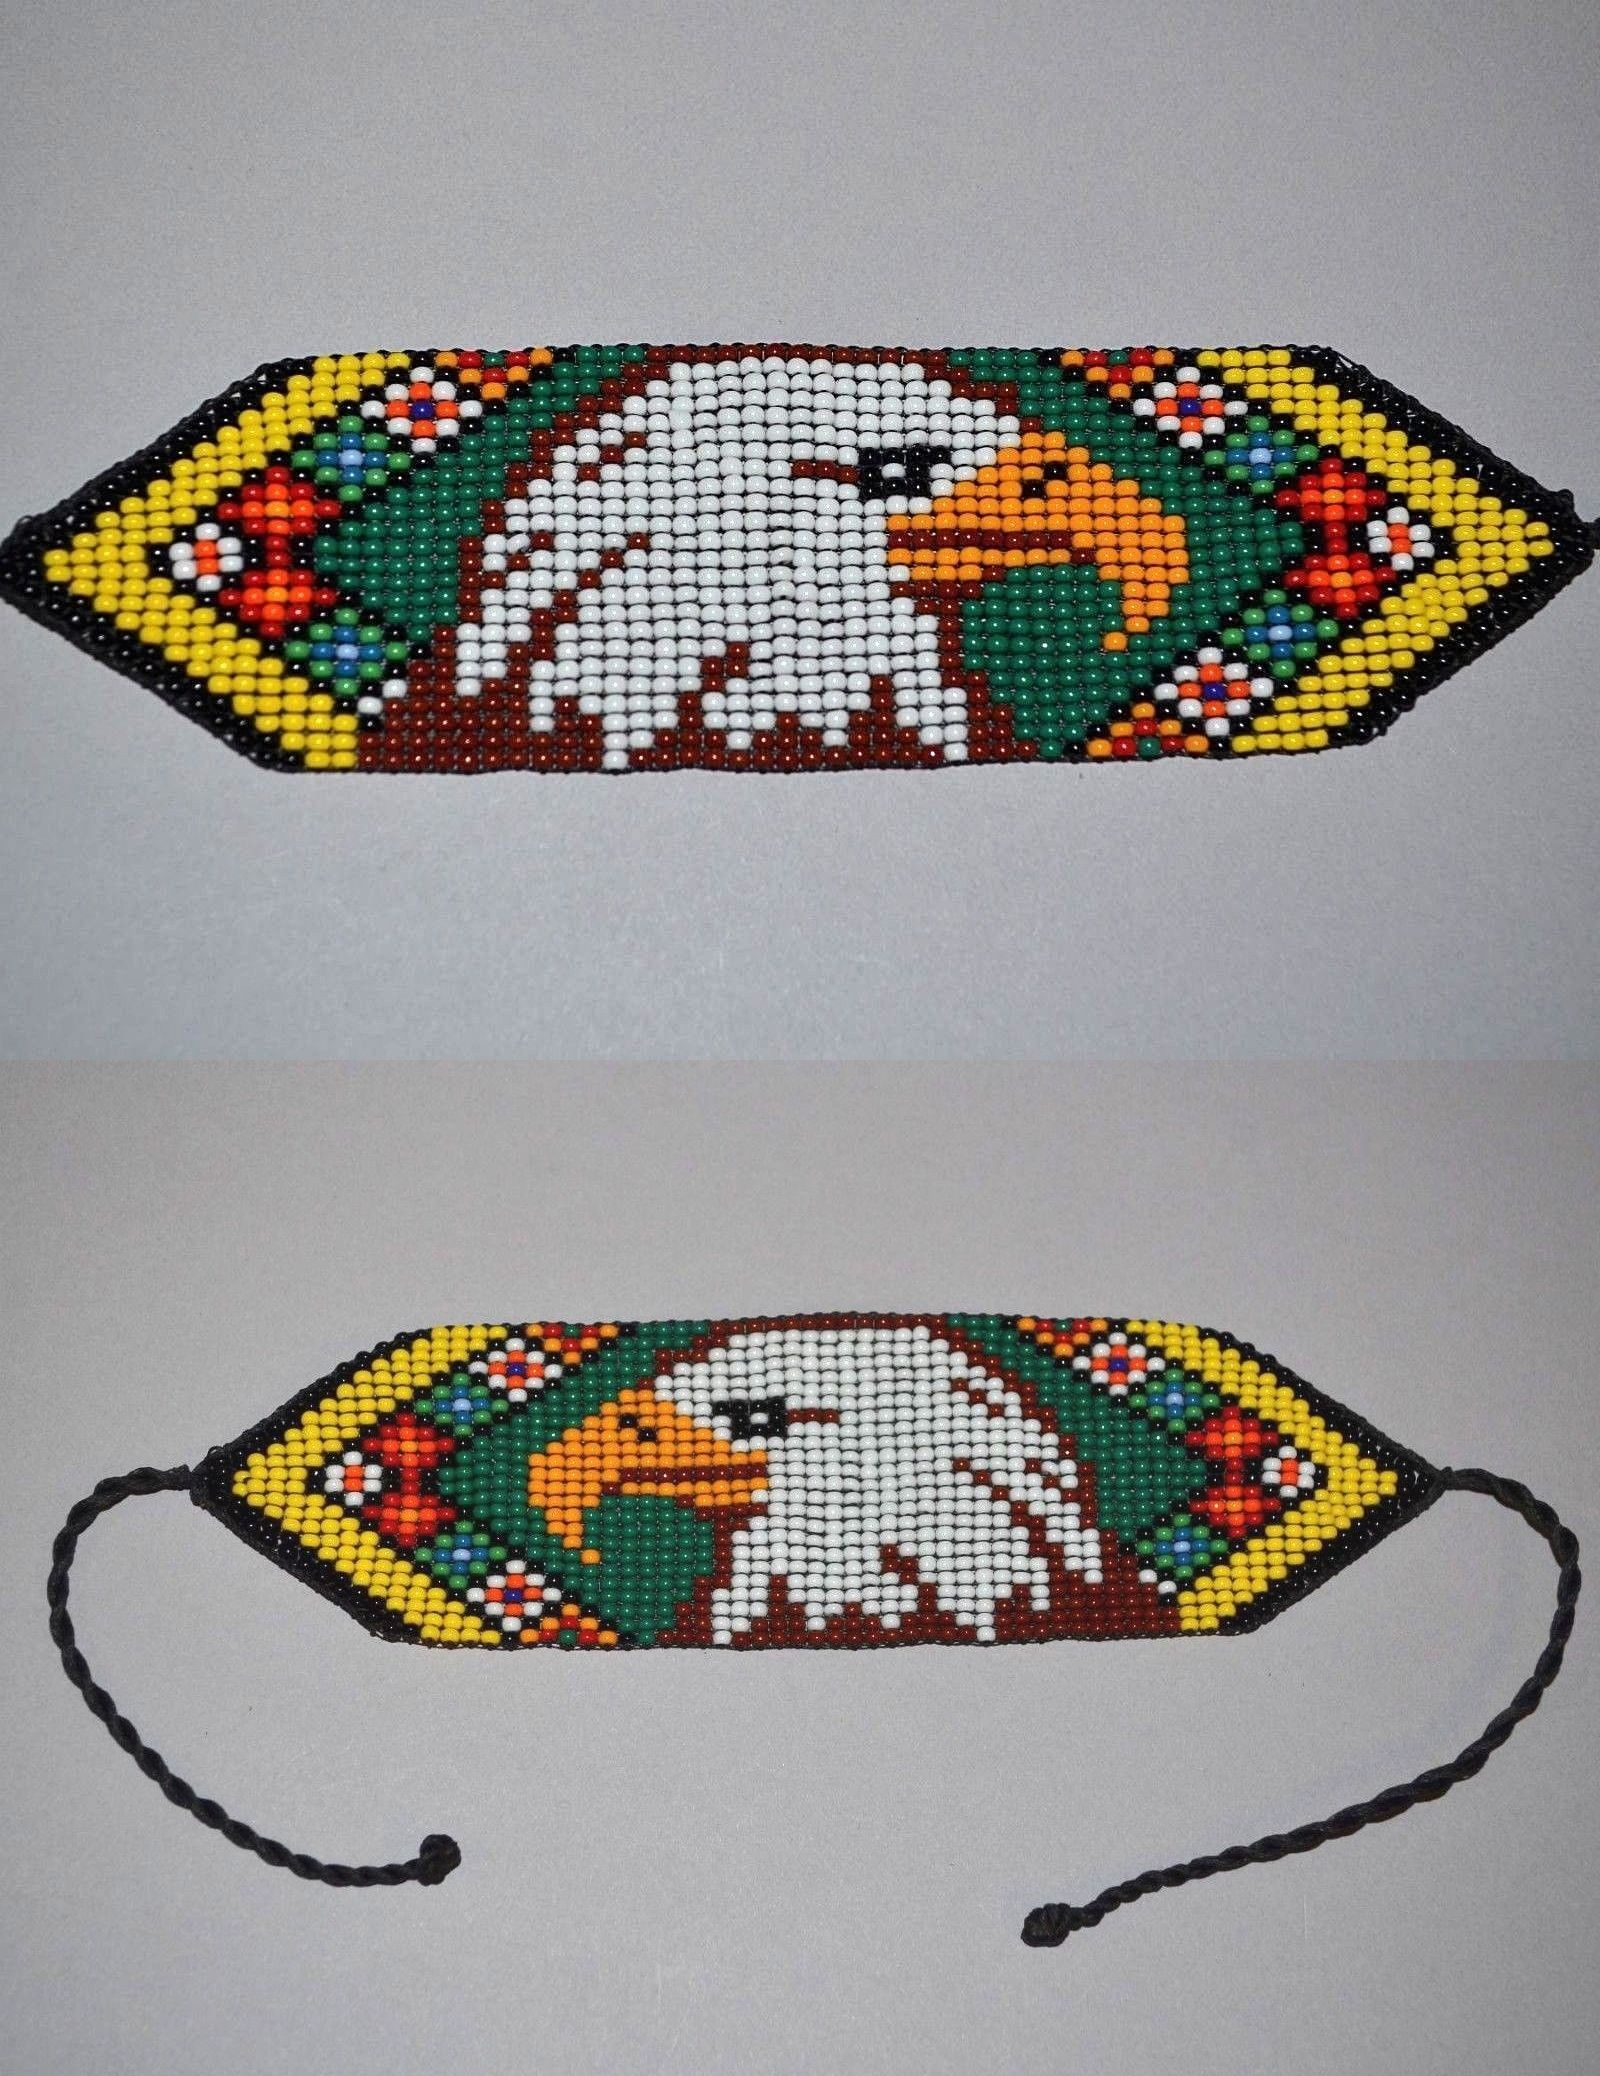 Bracelets 98504: Handmade Glass Seed Bead Loomwork Eagle Bracelet, Colombian Beadwork - Colombia -> BUY IT NOW ONLY: $26 on #eBay #bracelets #handmade #glass #loomwork #eagle #colombian #beadwork #colombia #nativeamericanbeadworkpatters